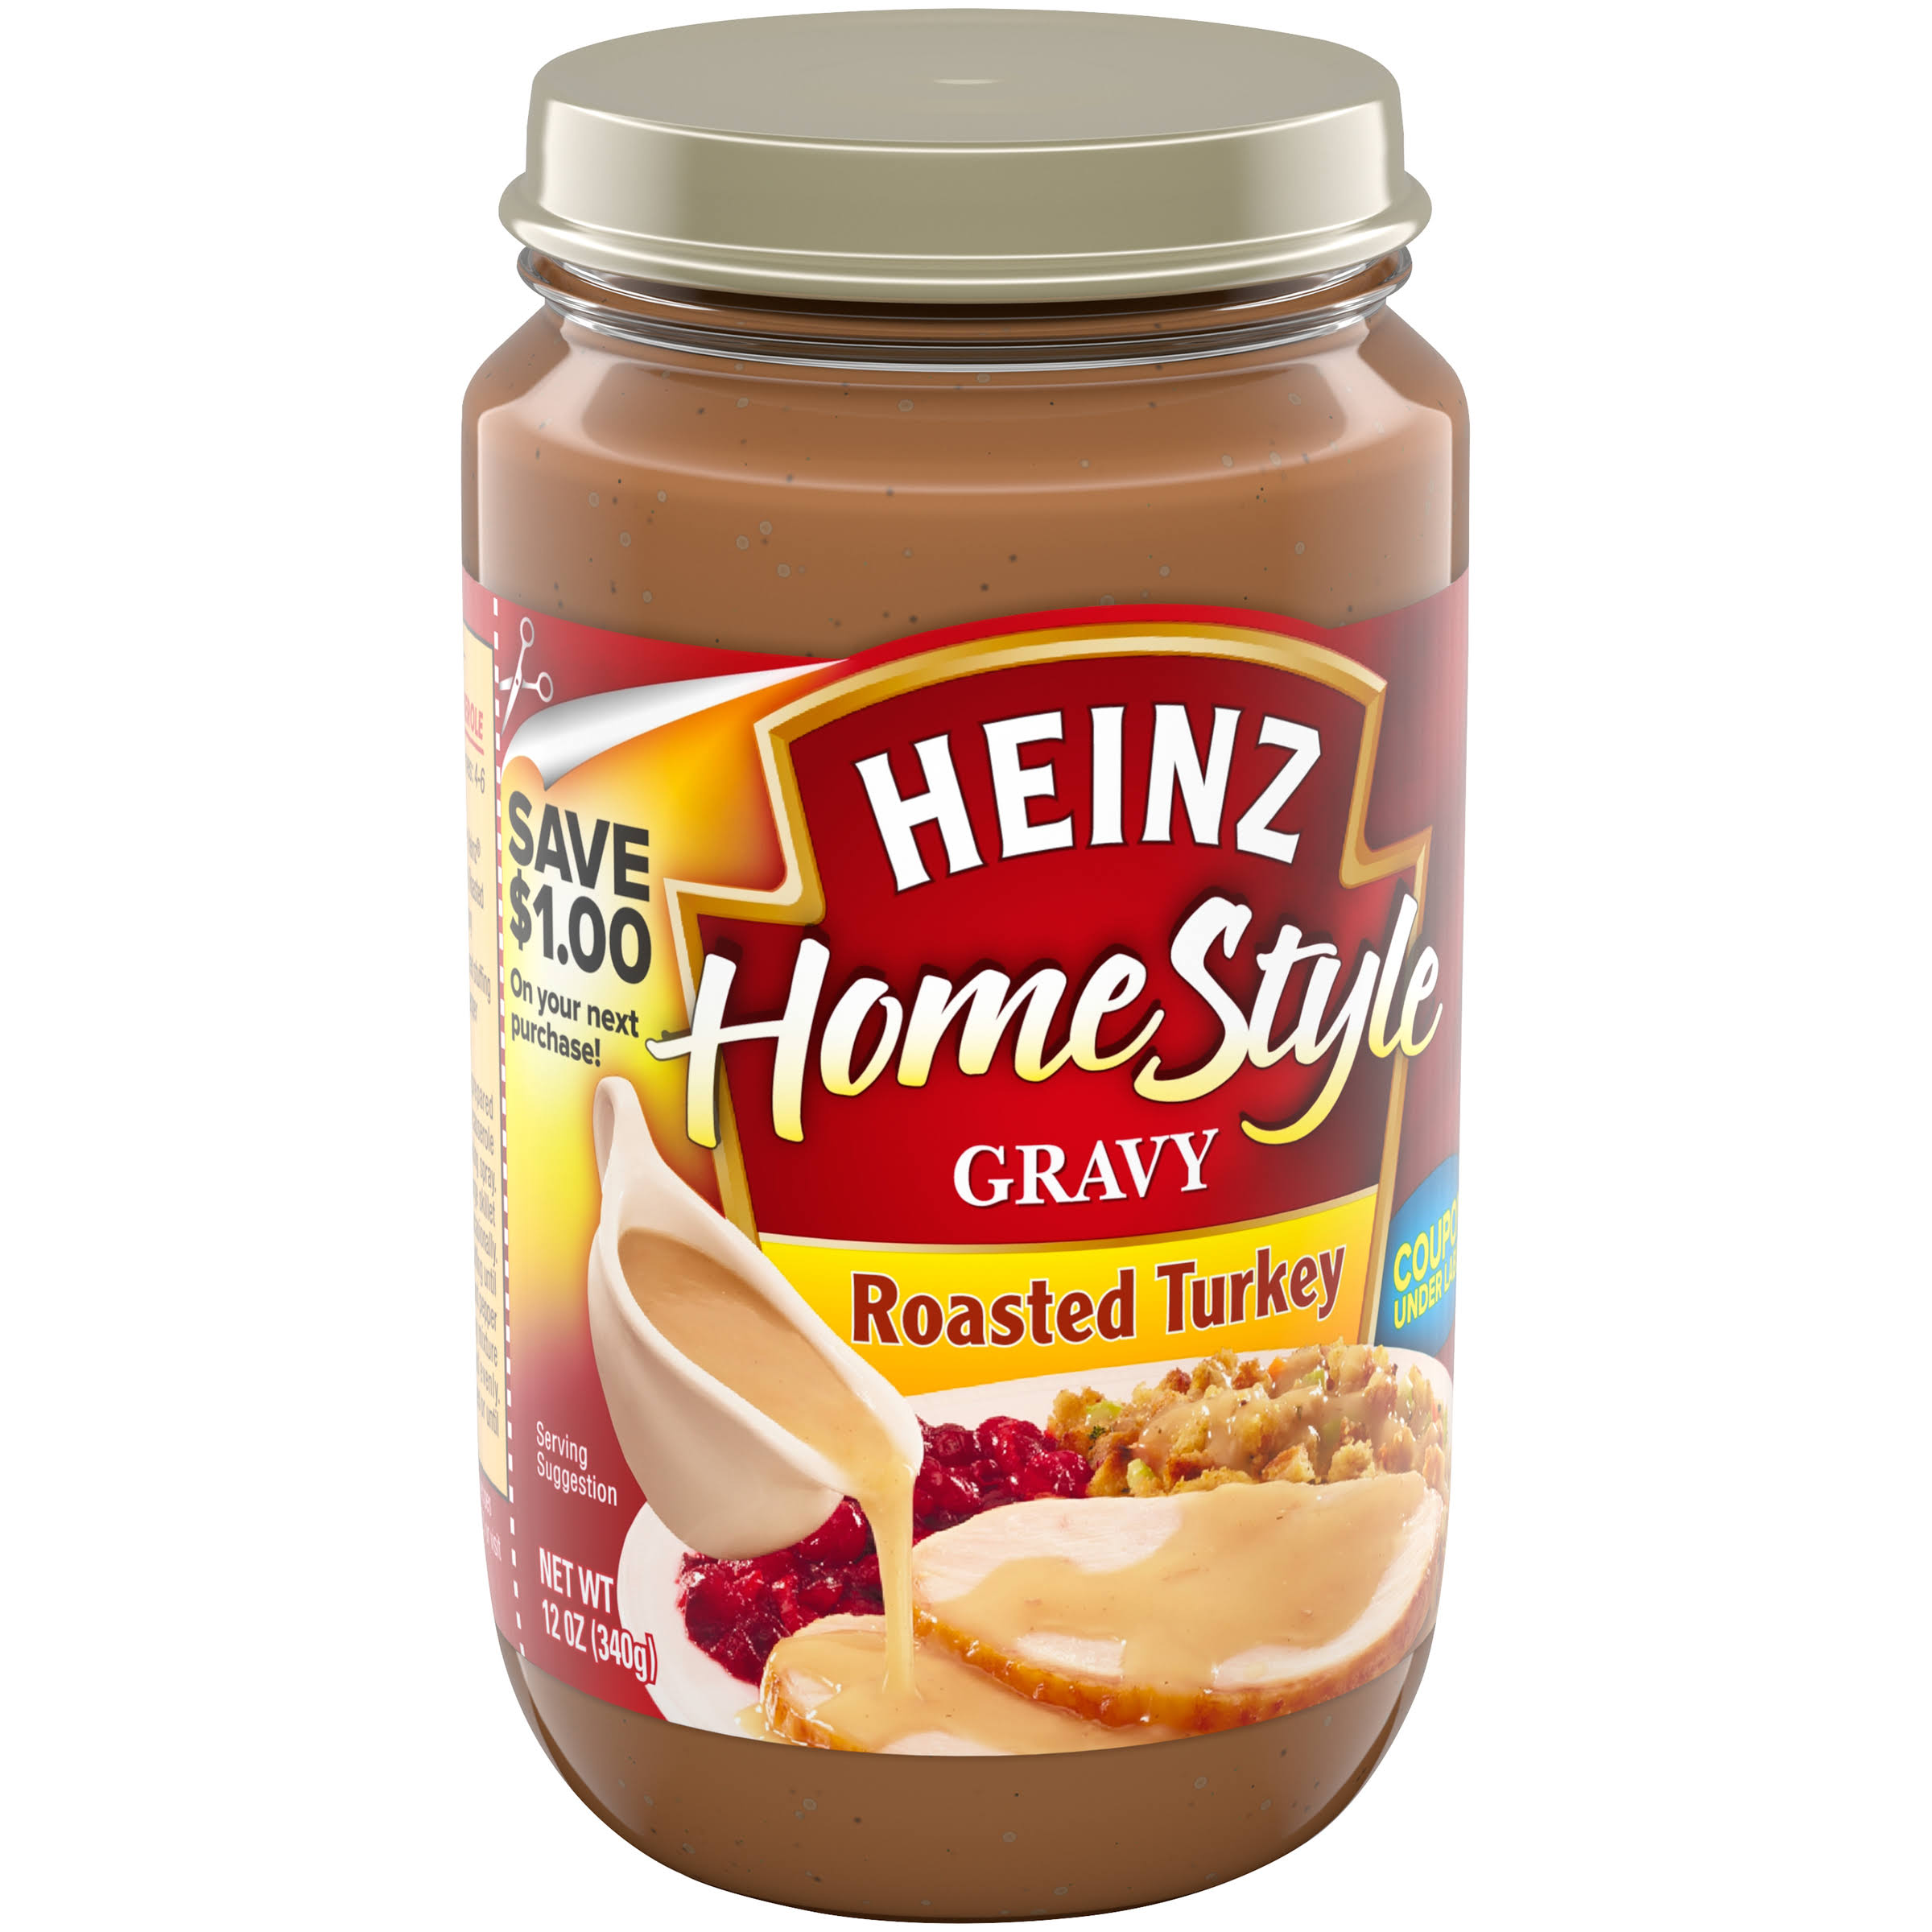 Heinz Home Style Roasted Turkey Gravy - 12oz